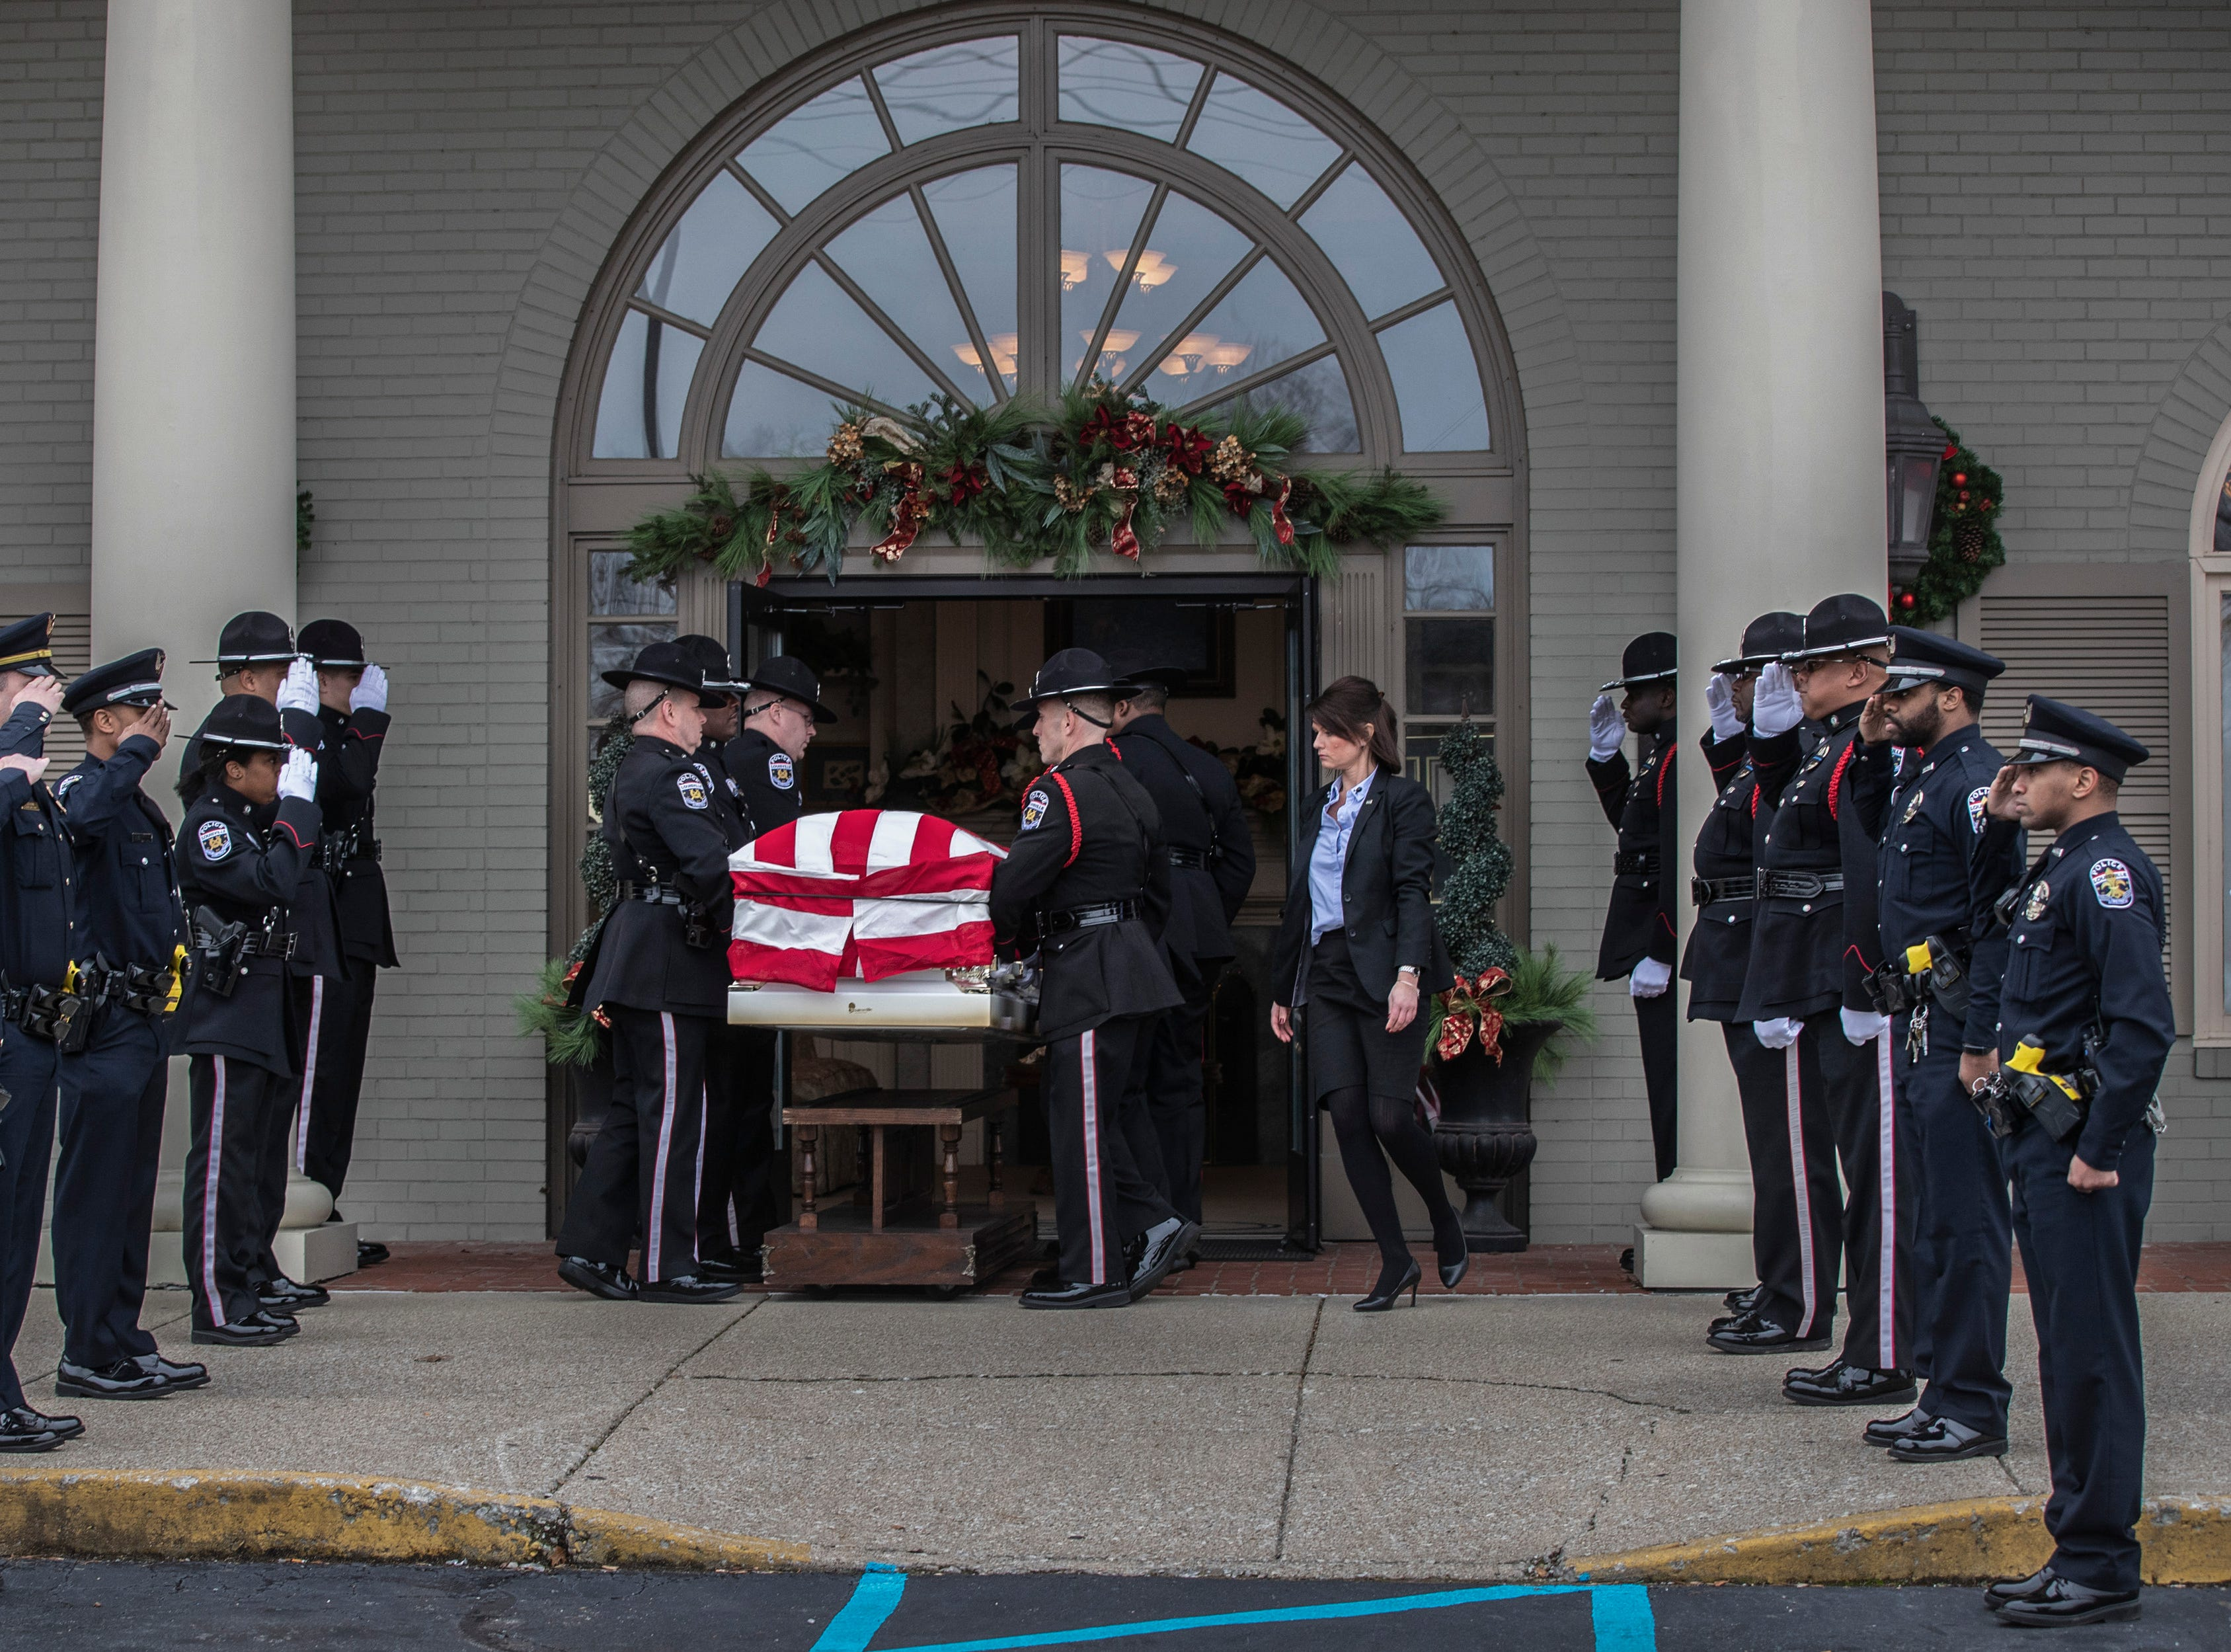 Det. Deidre Mengedoht's casket is carried into Resthaven Funeral Home following the procession Saturday through Louisville, Ky. December 29, 2018